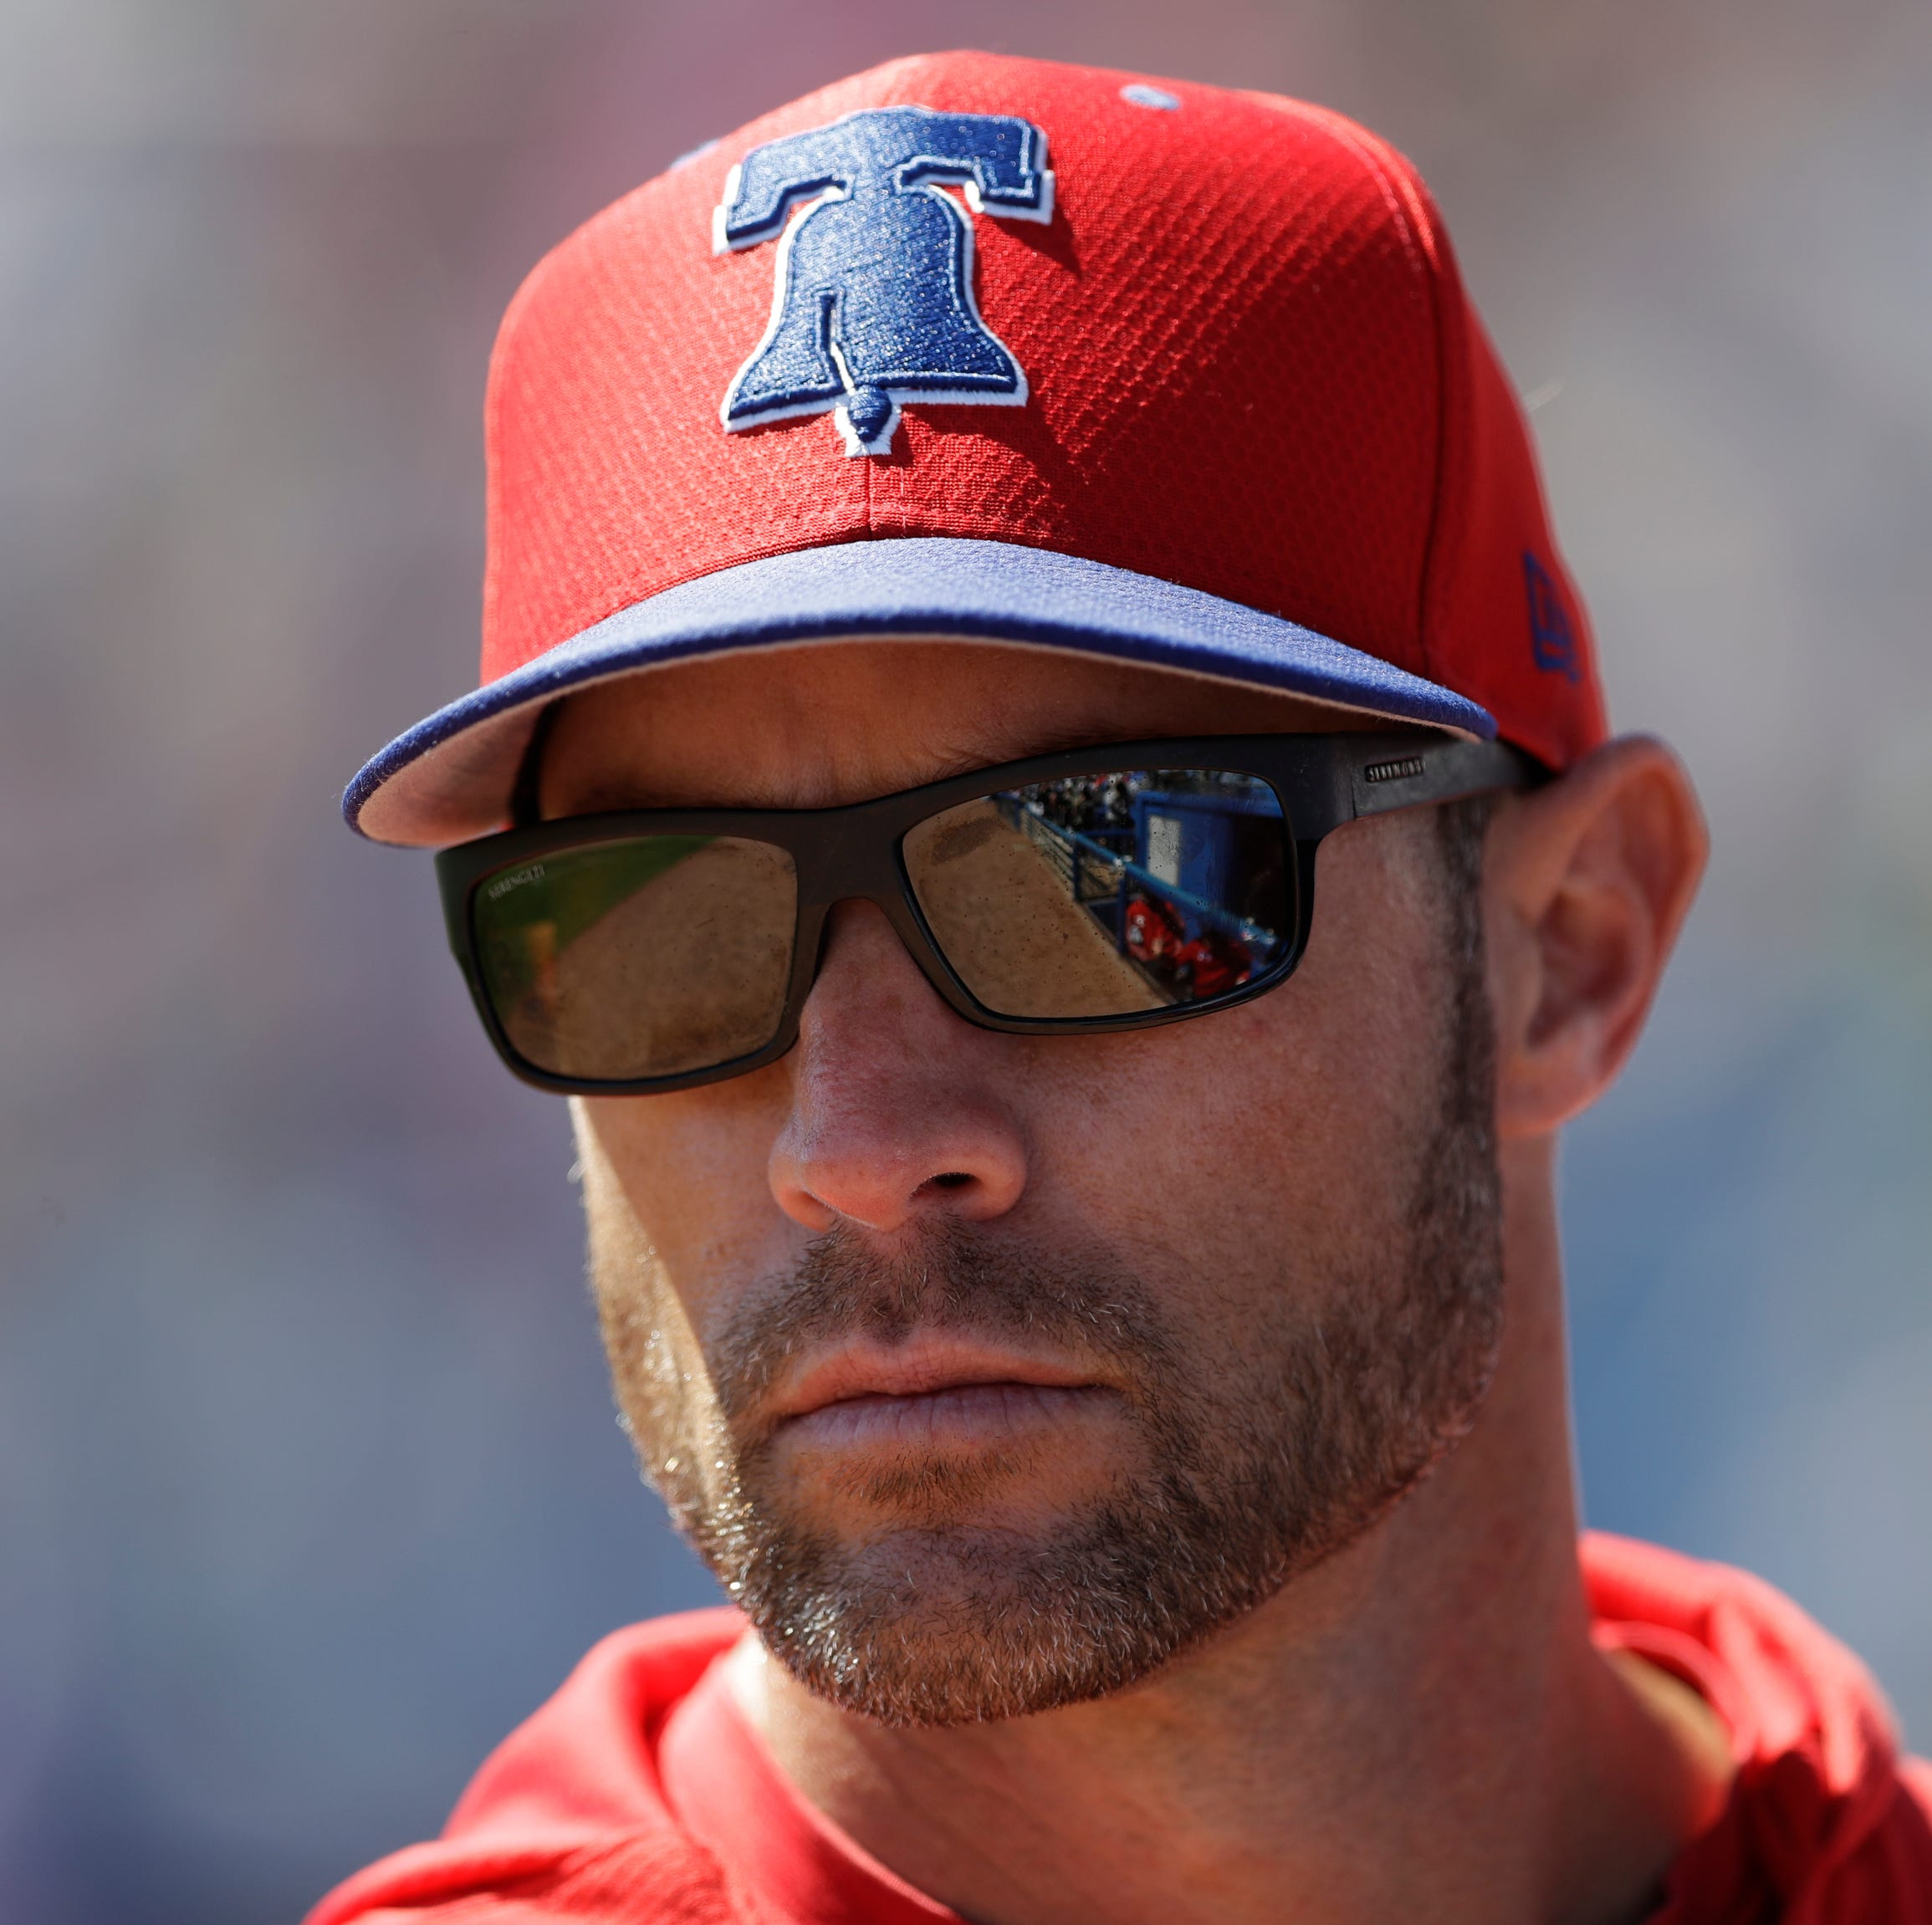 Only Gabe Kapler can get in the way of the Phillies winning with Bryce Harper